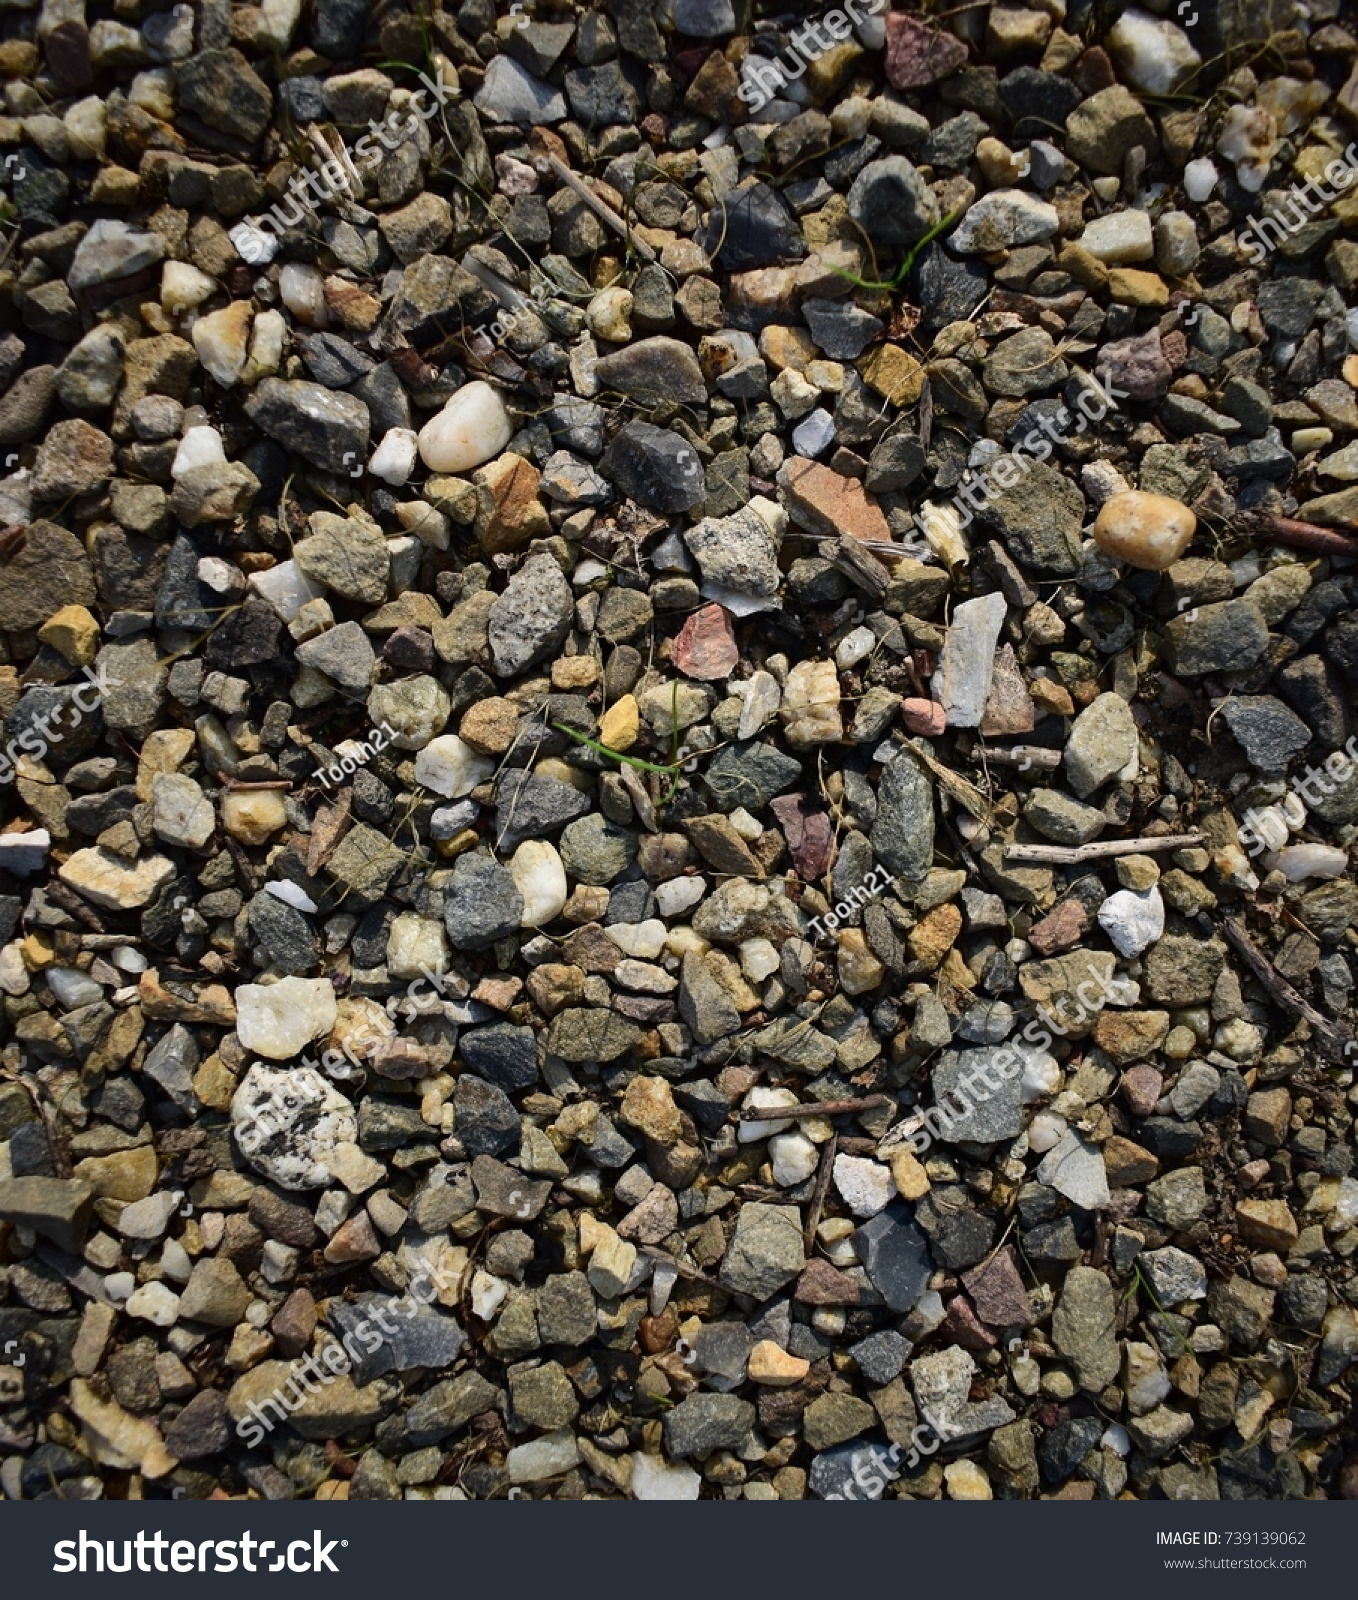 Gravel comprising of many different types of rock